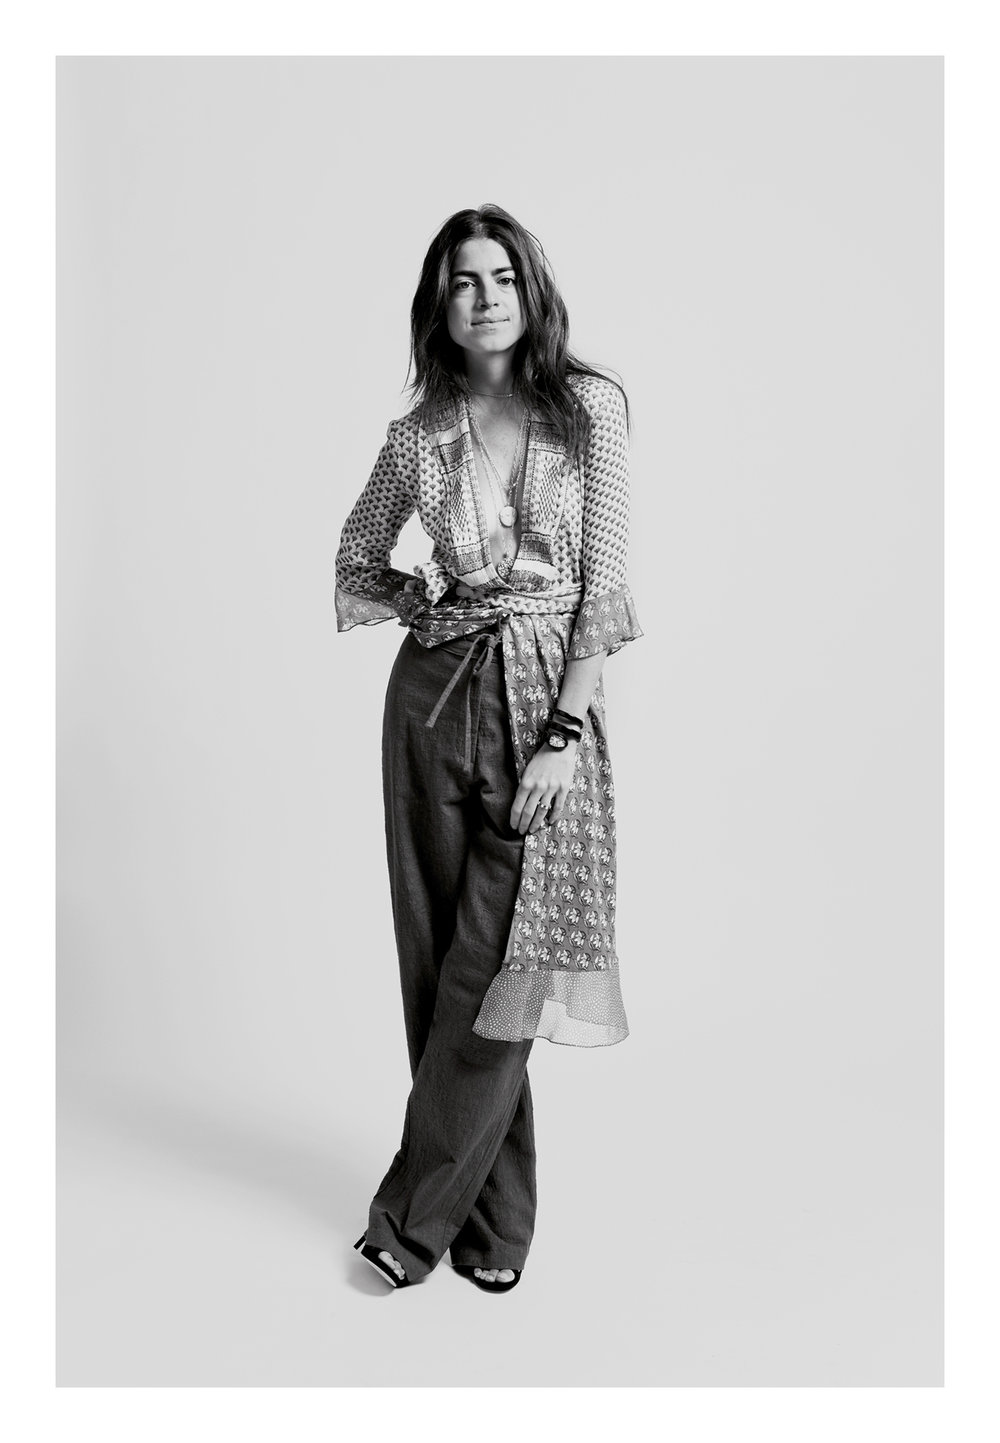 KATE OWEN | LEANDRA MEDINE MAN REPELLER | BLACK AND WHITE PORTRAIT